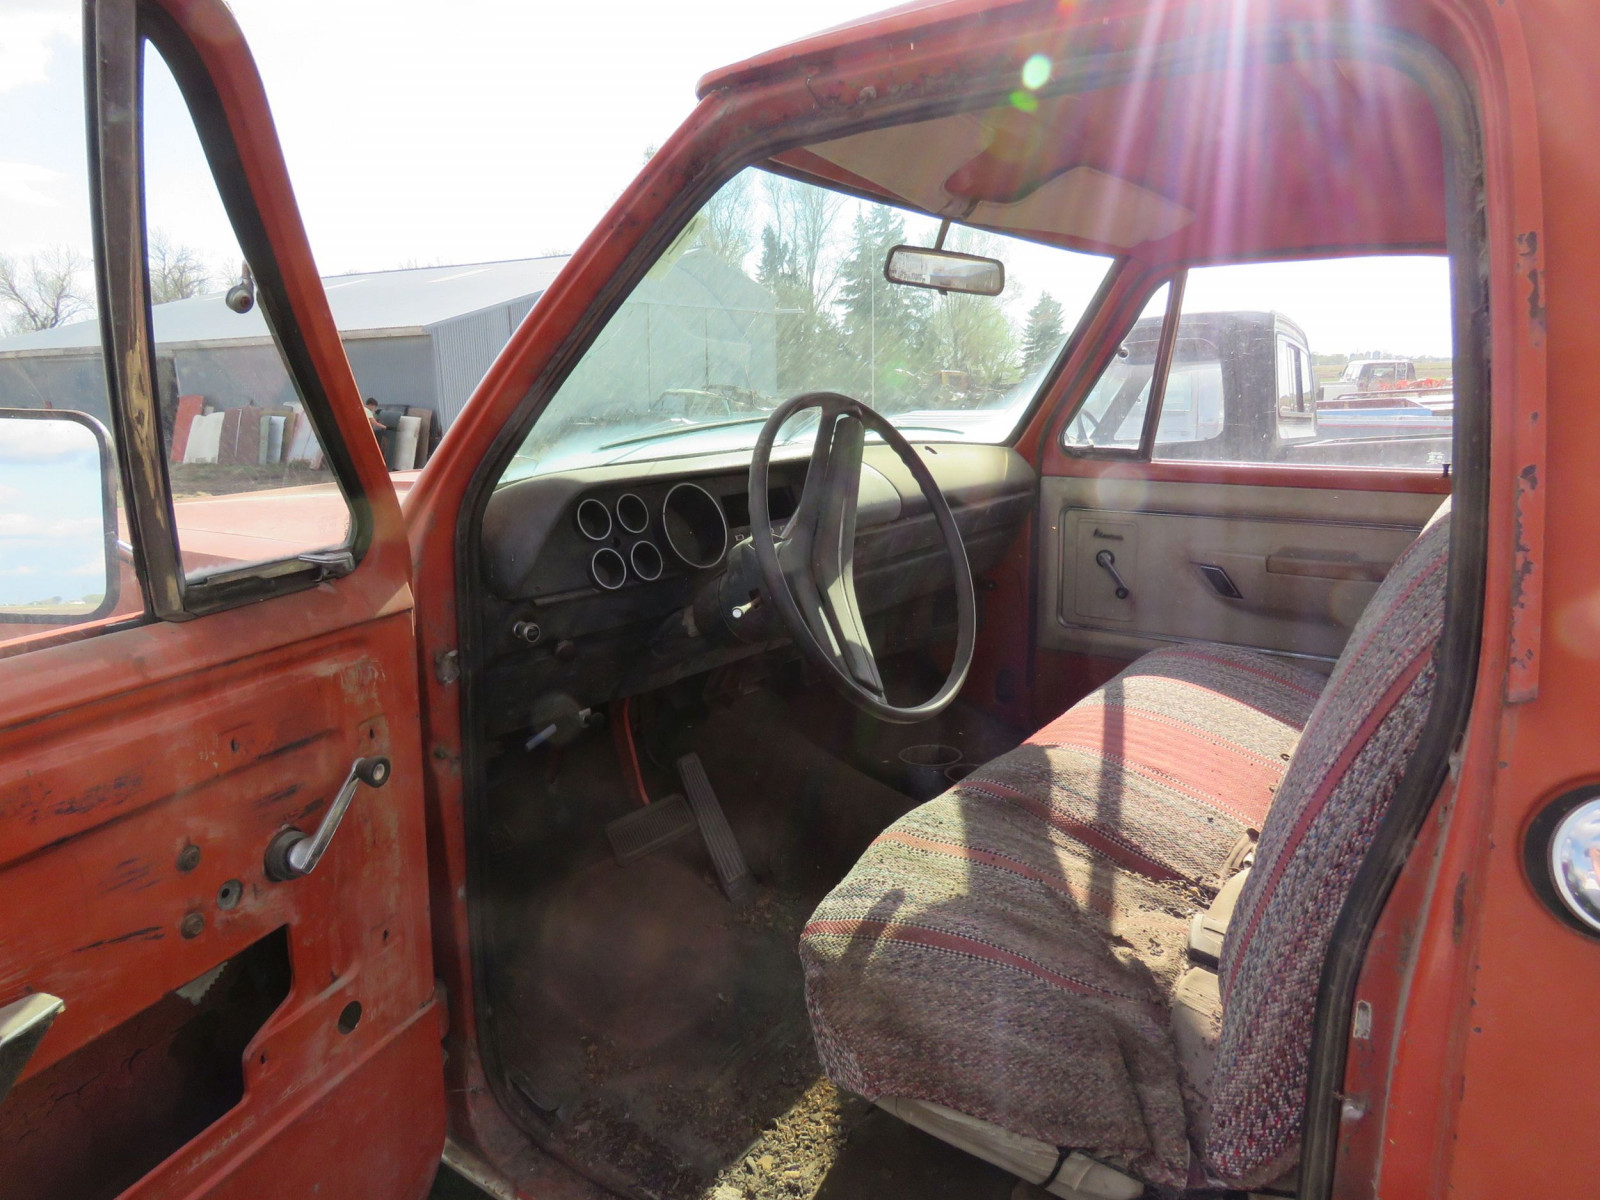 1973 Dodge D200 Pickup - Image 5